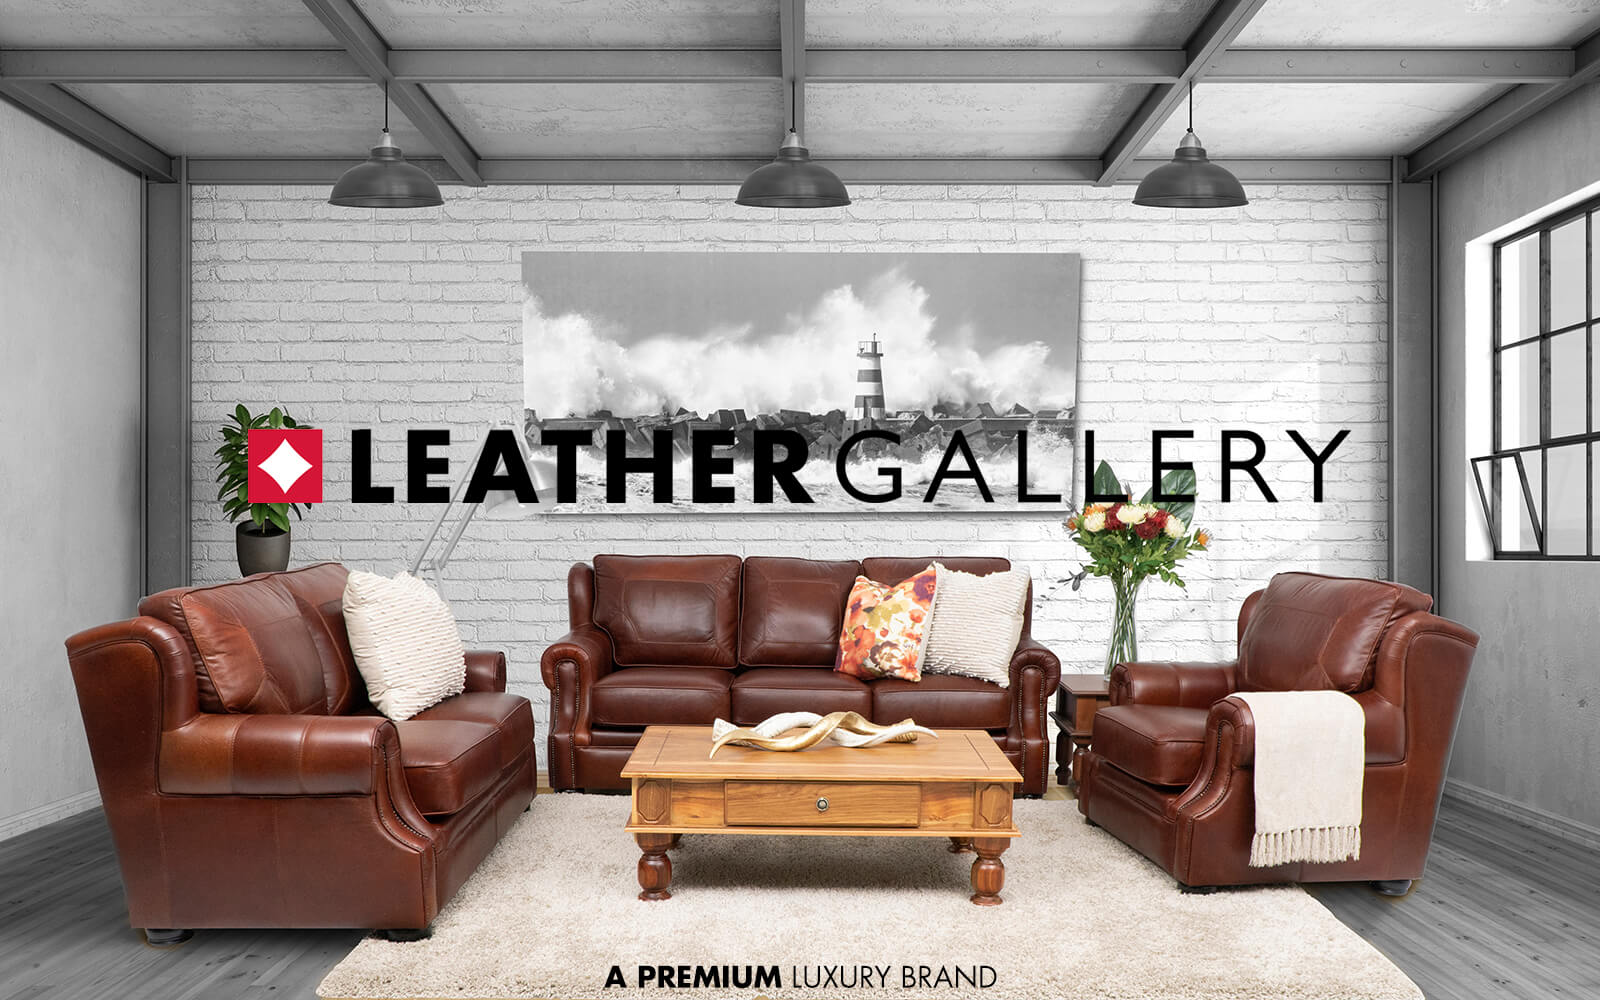 dc3a555430e8b ... Leather Gallery - A Premium Luxury Brand